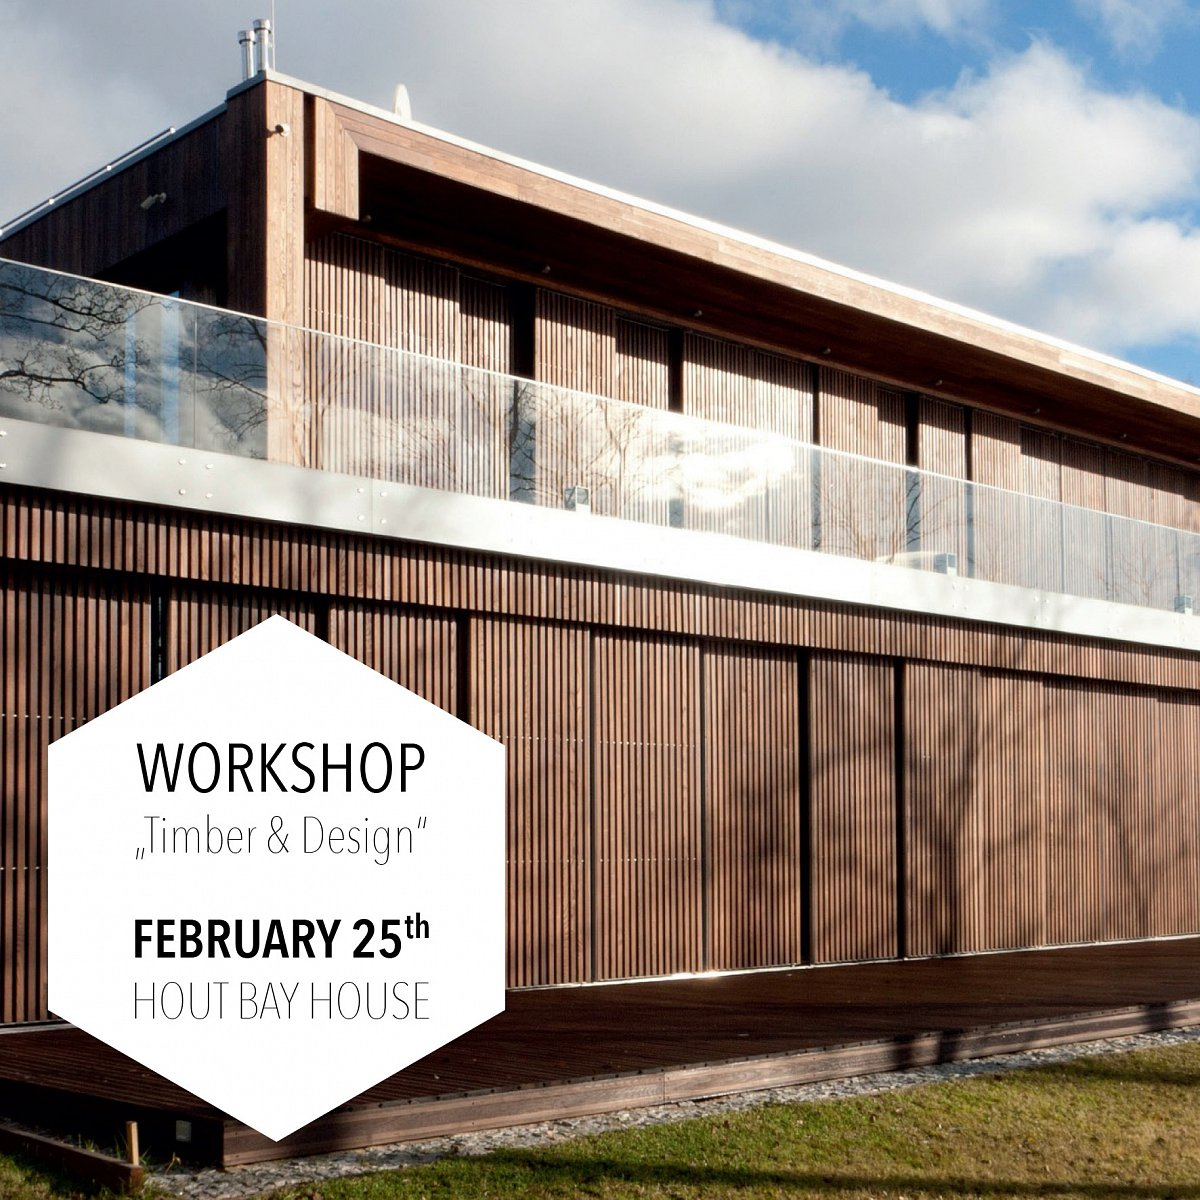 WORKSHOP: Timber & Design